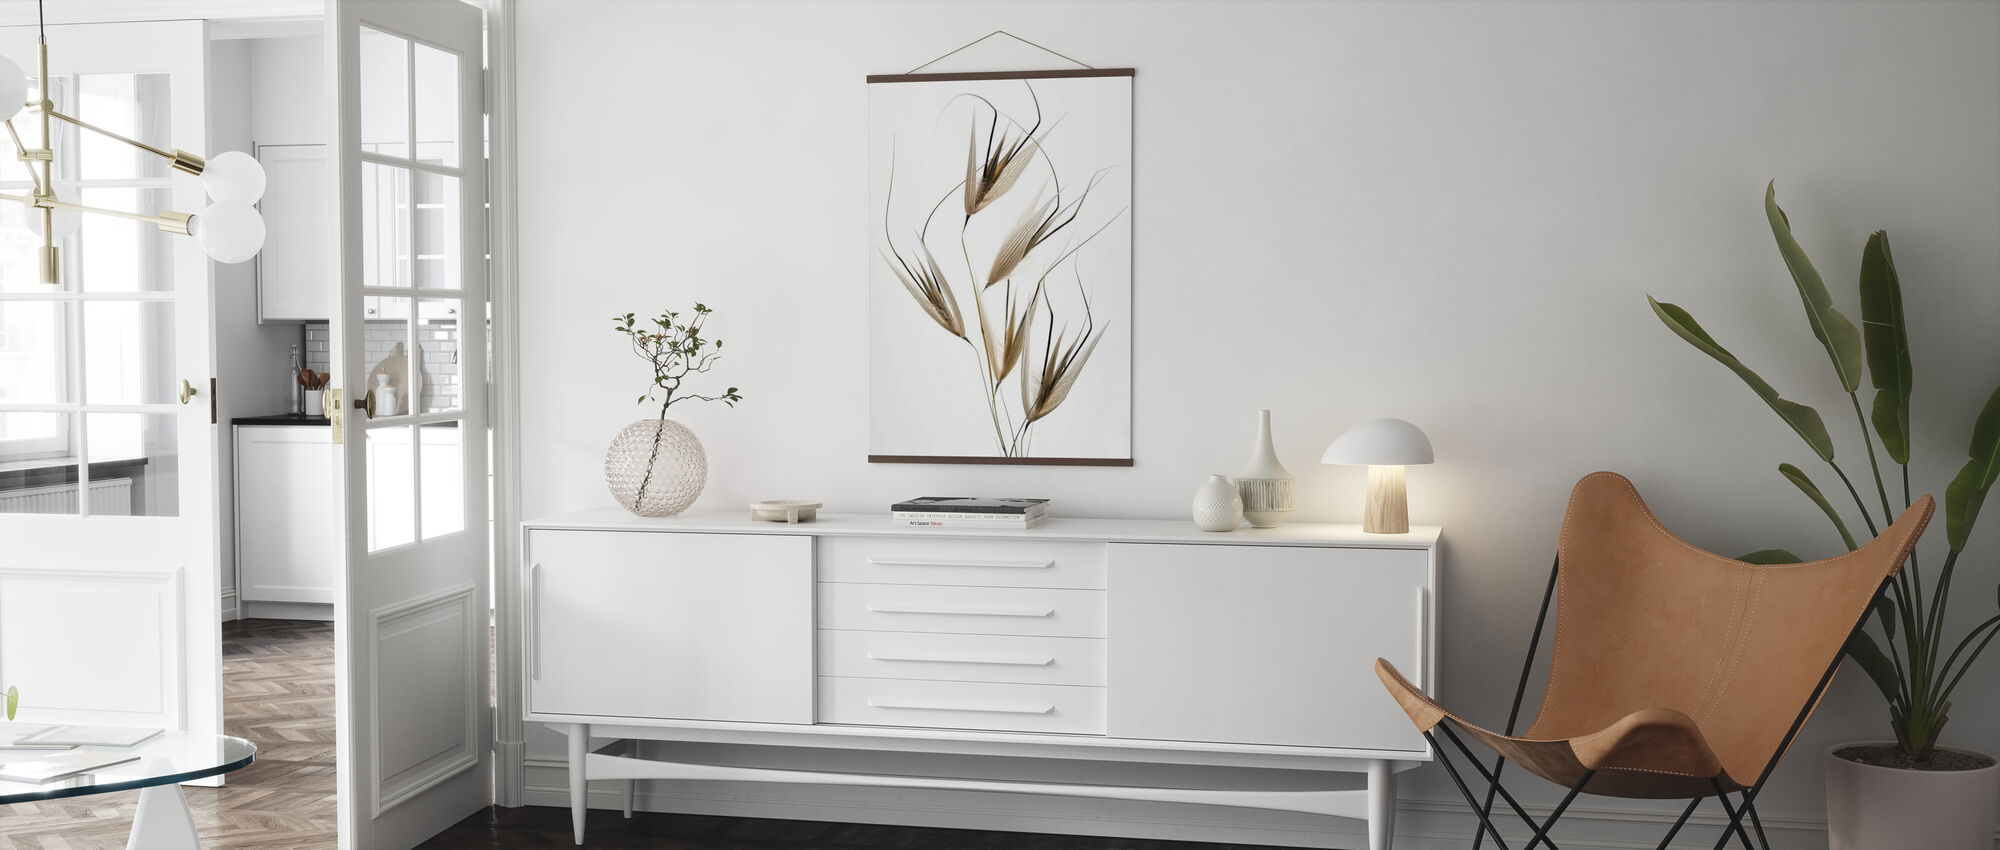 Delicacy of Nature - Poster - Living Room